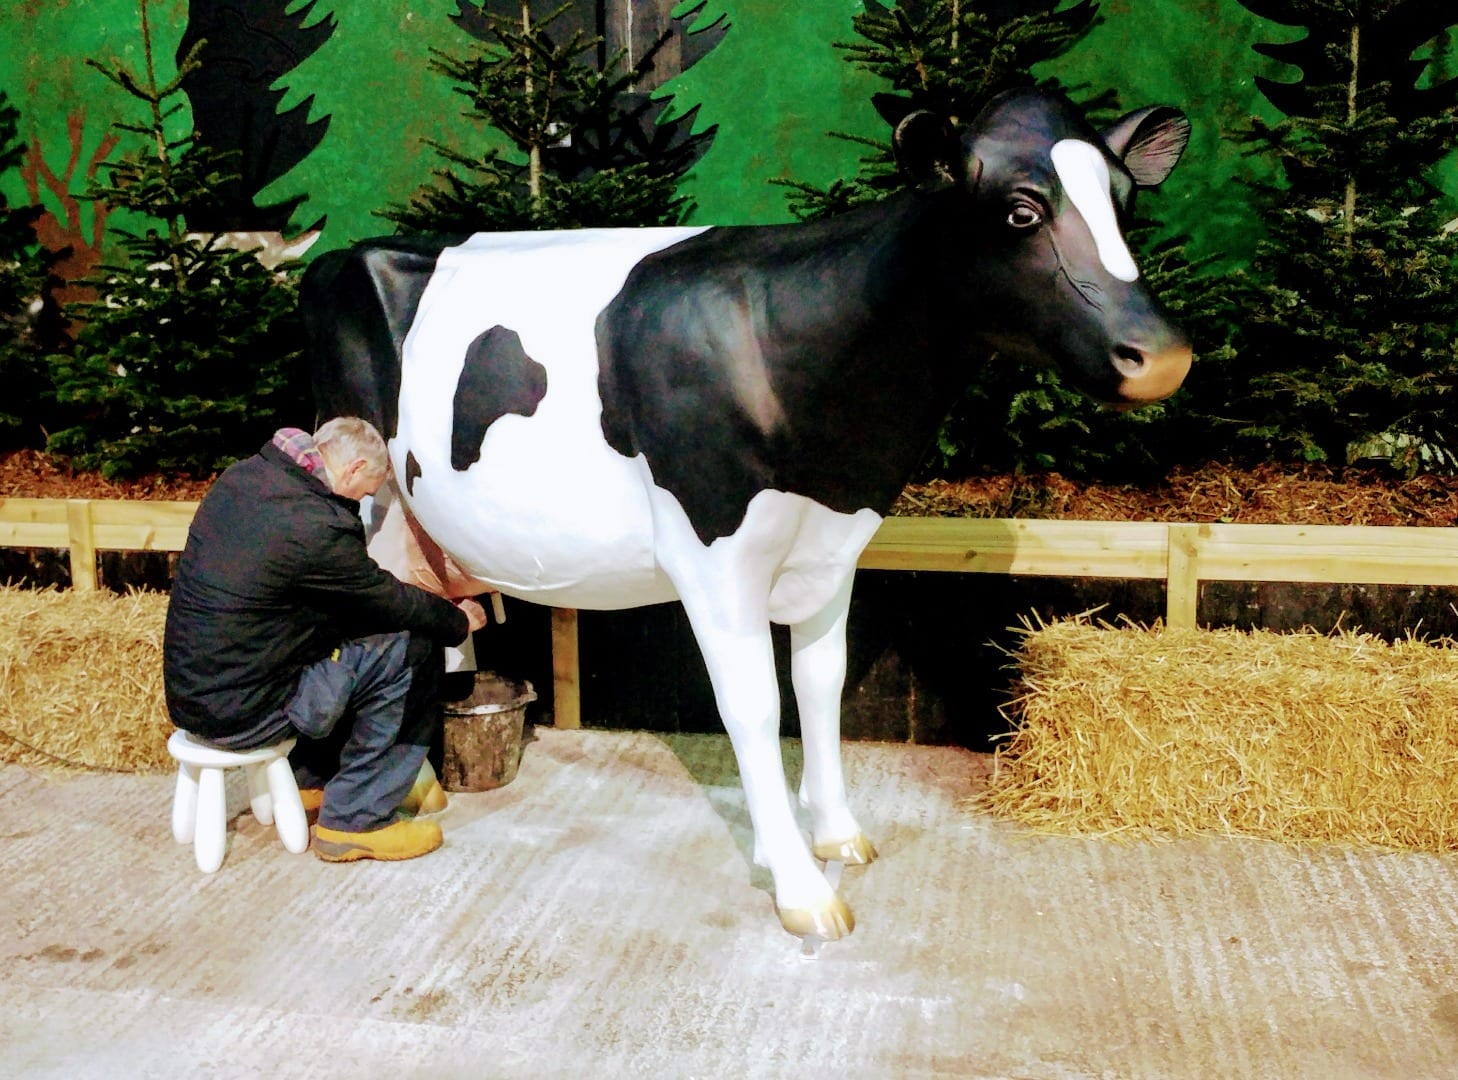 Meet Daisy the Dairy Cow at Farmer Parr's